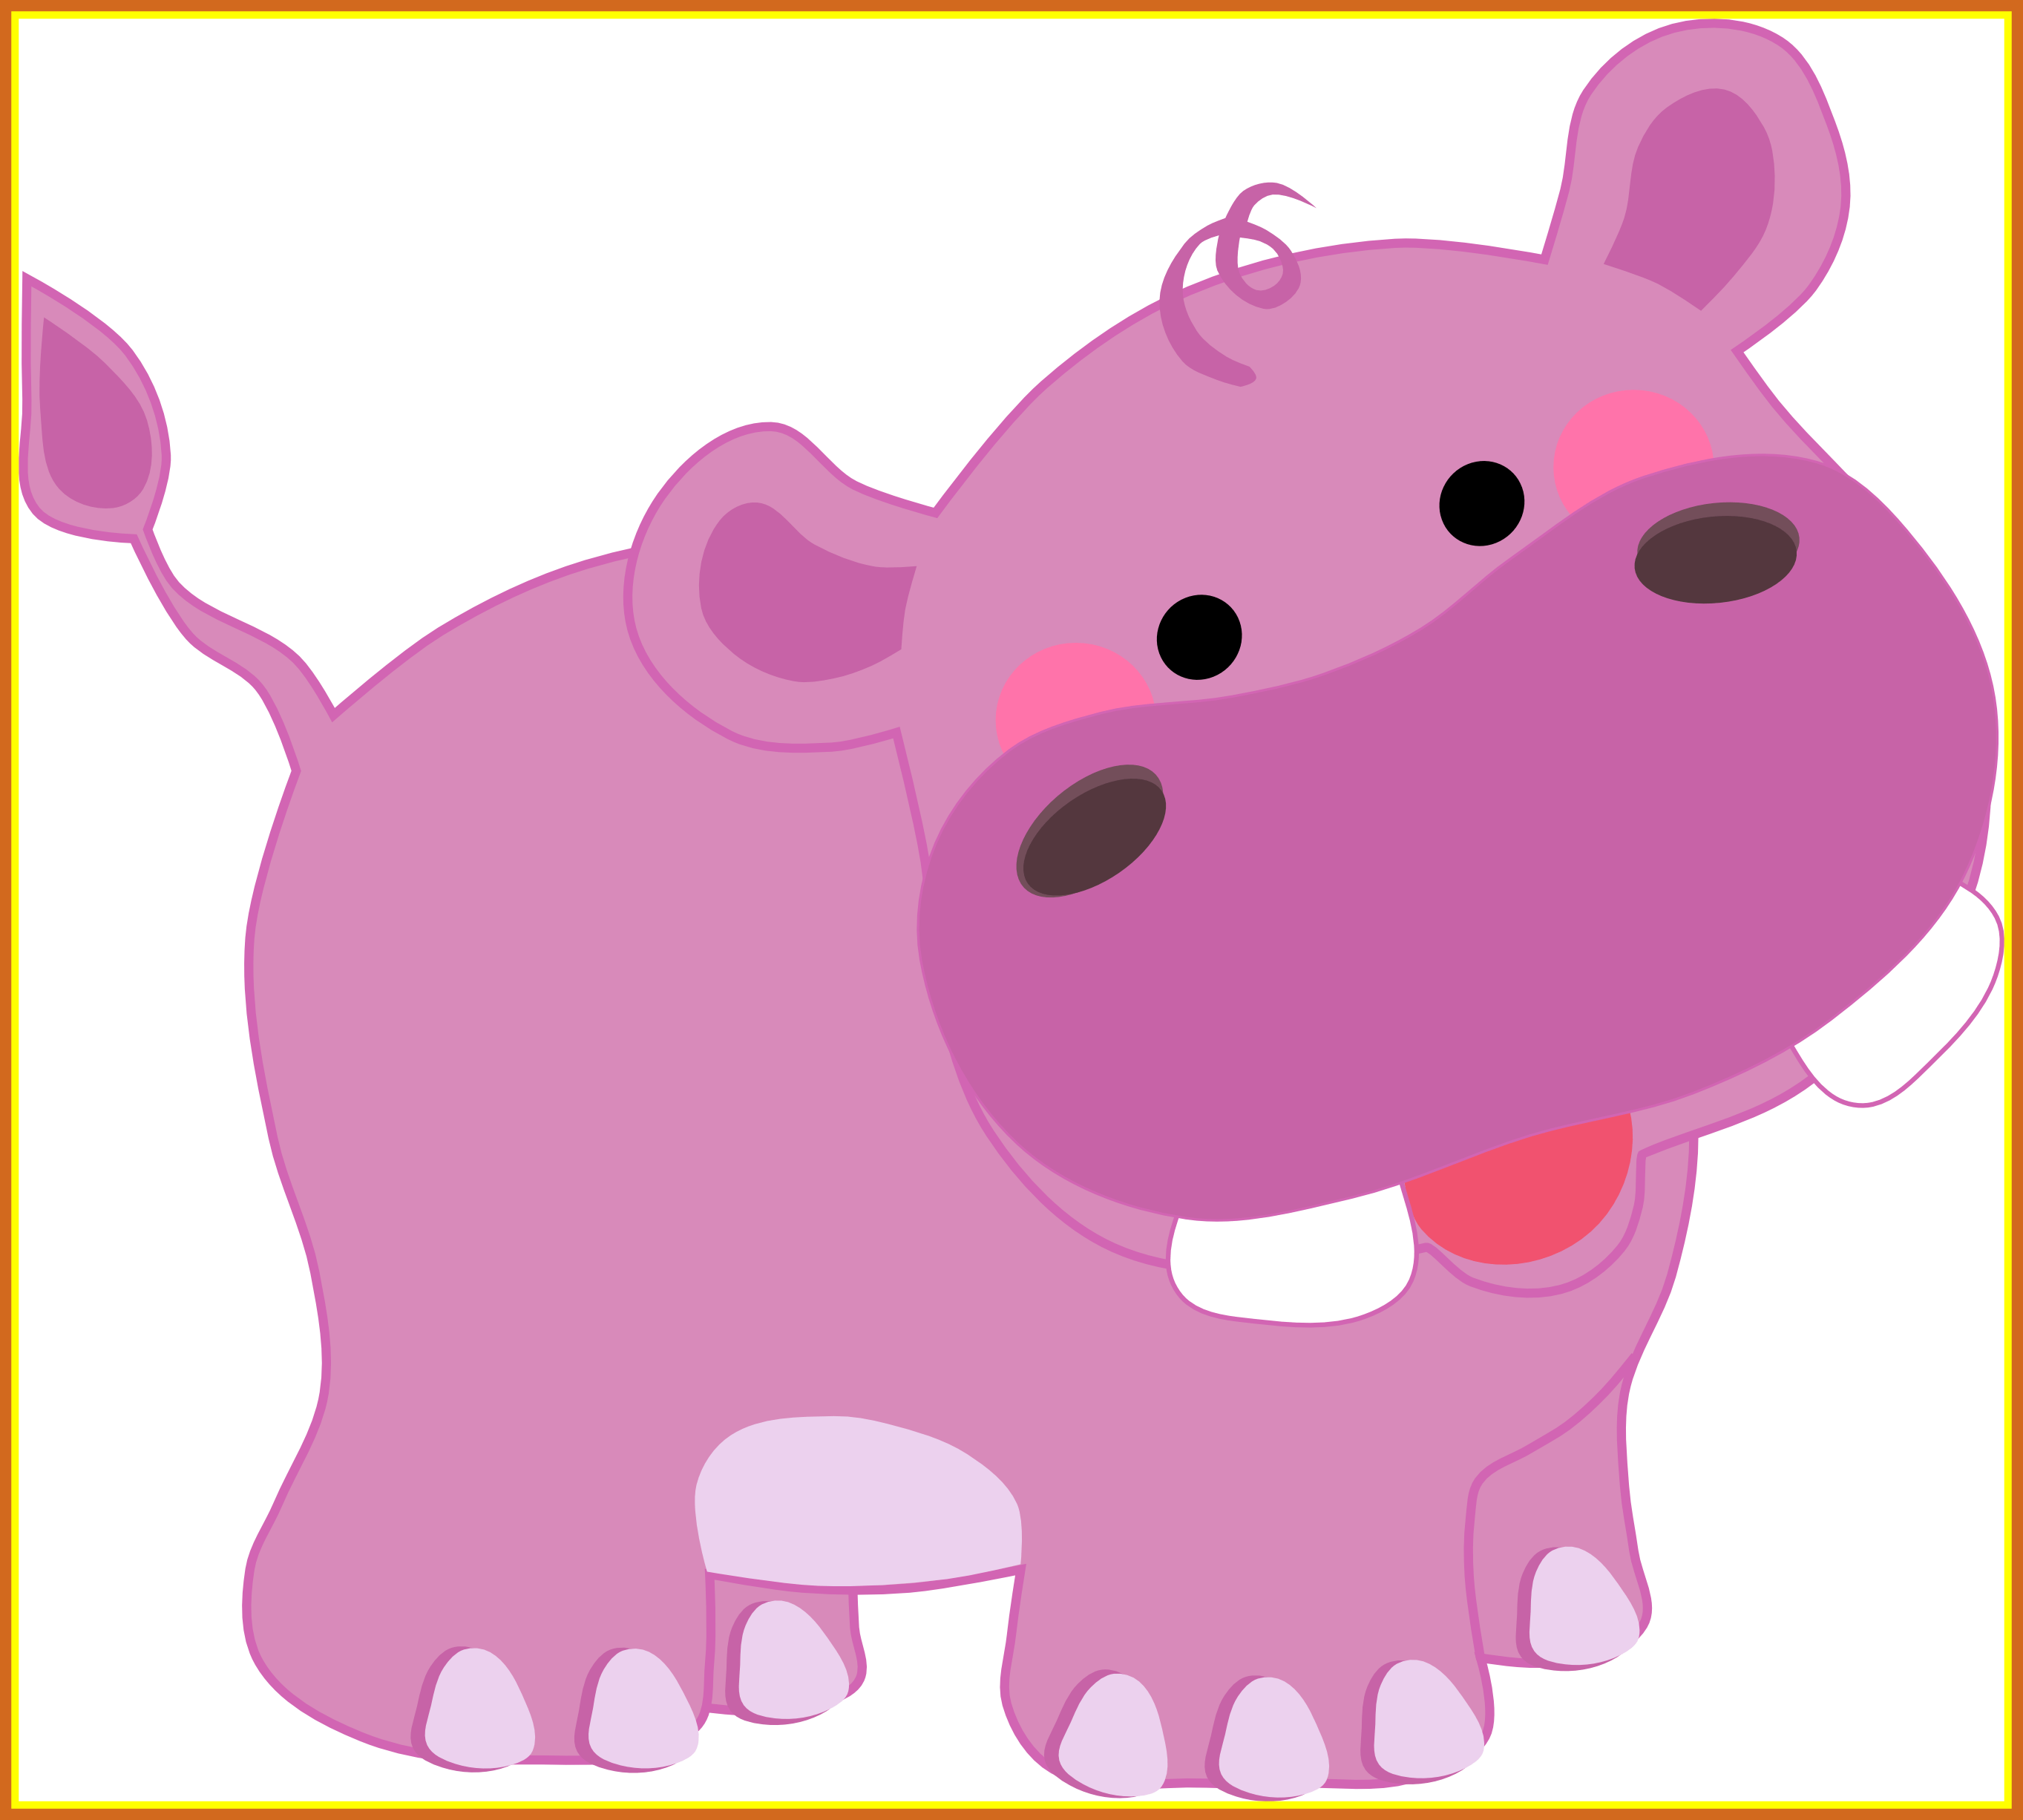 Piggy bank clipart kids clipart transparent library Best U F Giraffe Image Of Piggy Bank Clipart Transparent Inspiration ... clipart transparent library